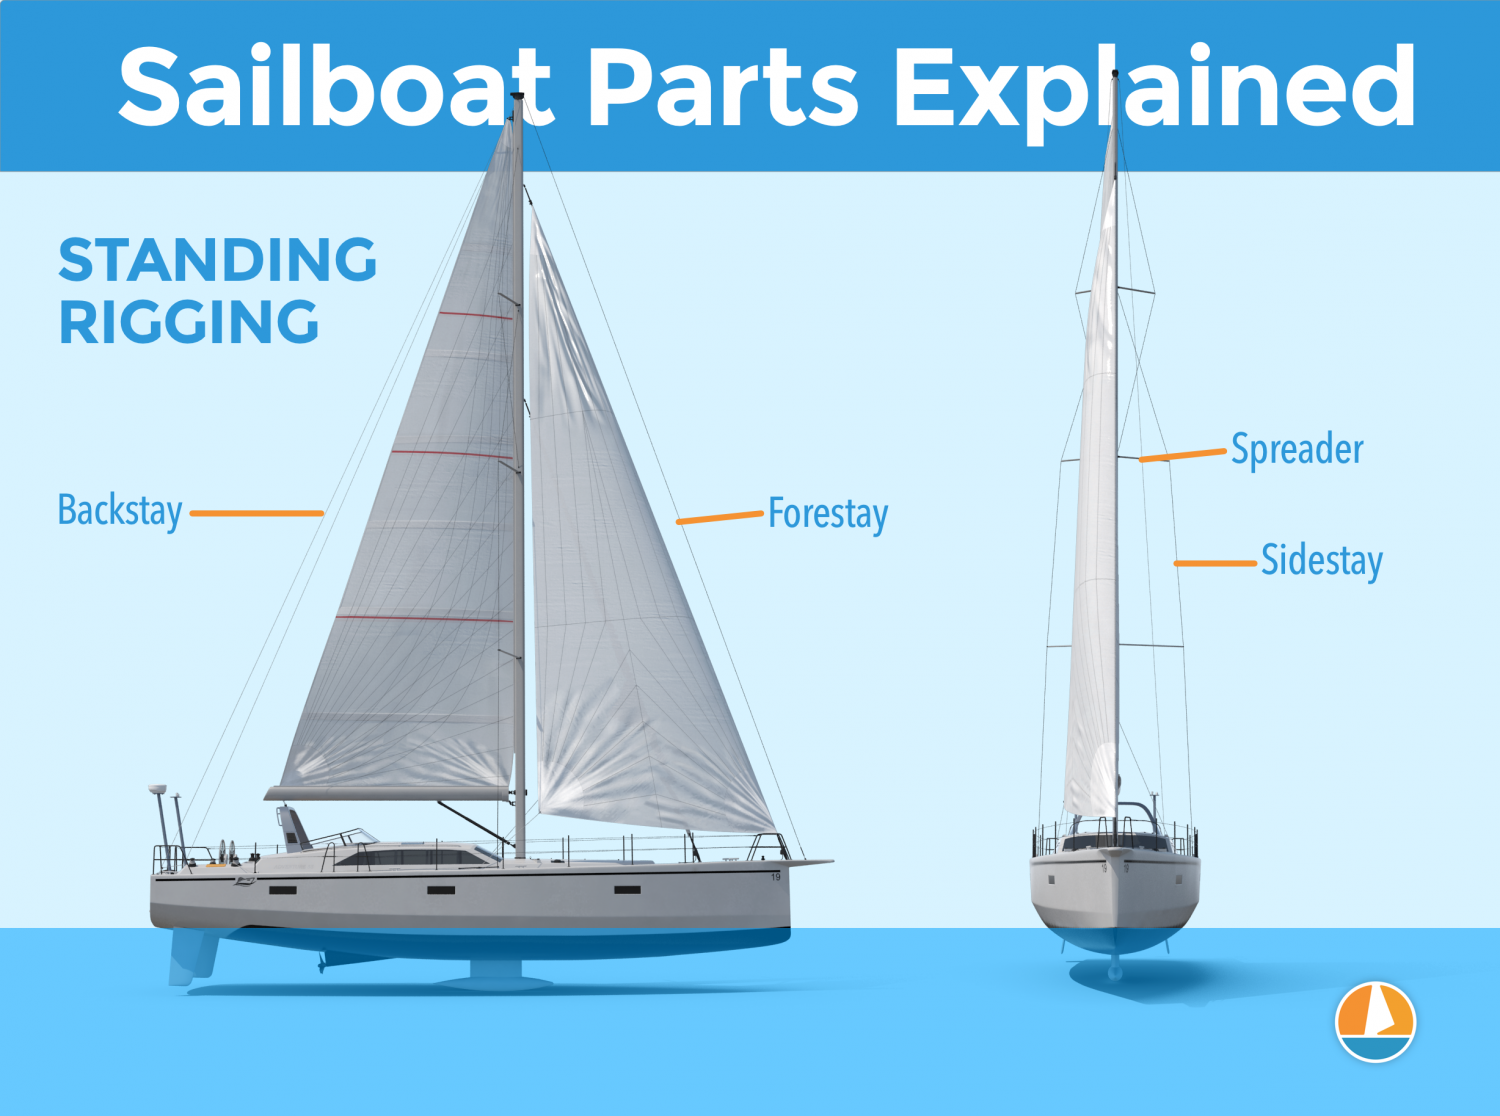 Diagram of the Standing Riggin Parts of a sailboat